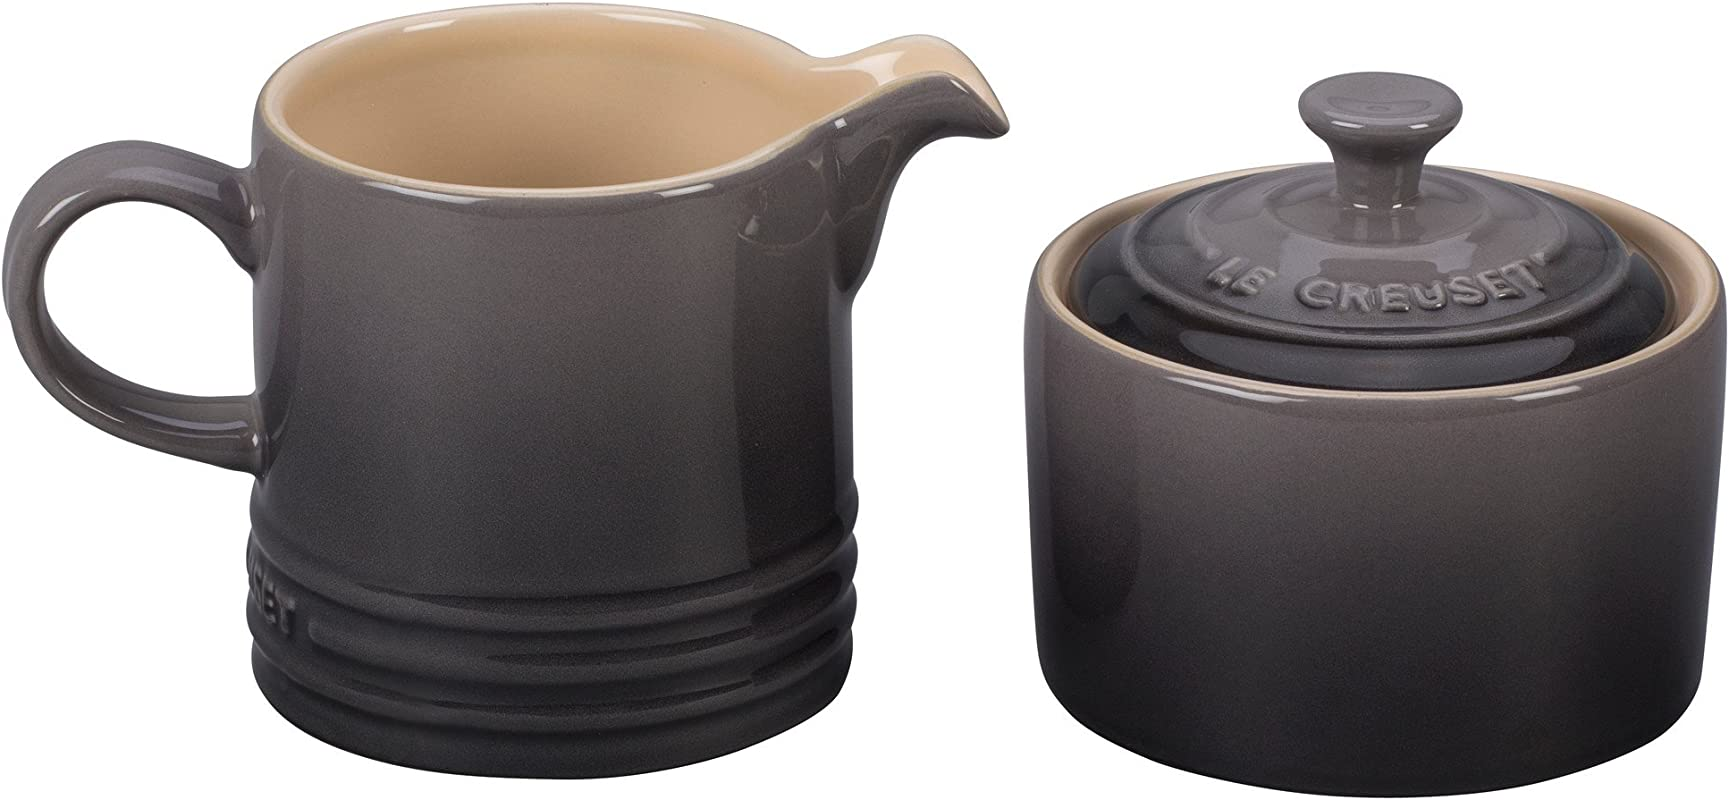 Le Creuset Of America PG8005 107F Le Creuset Stoneware Cream And Sugar Set Oyster